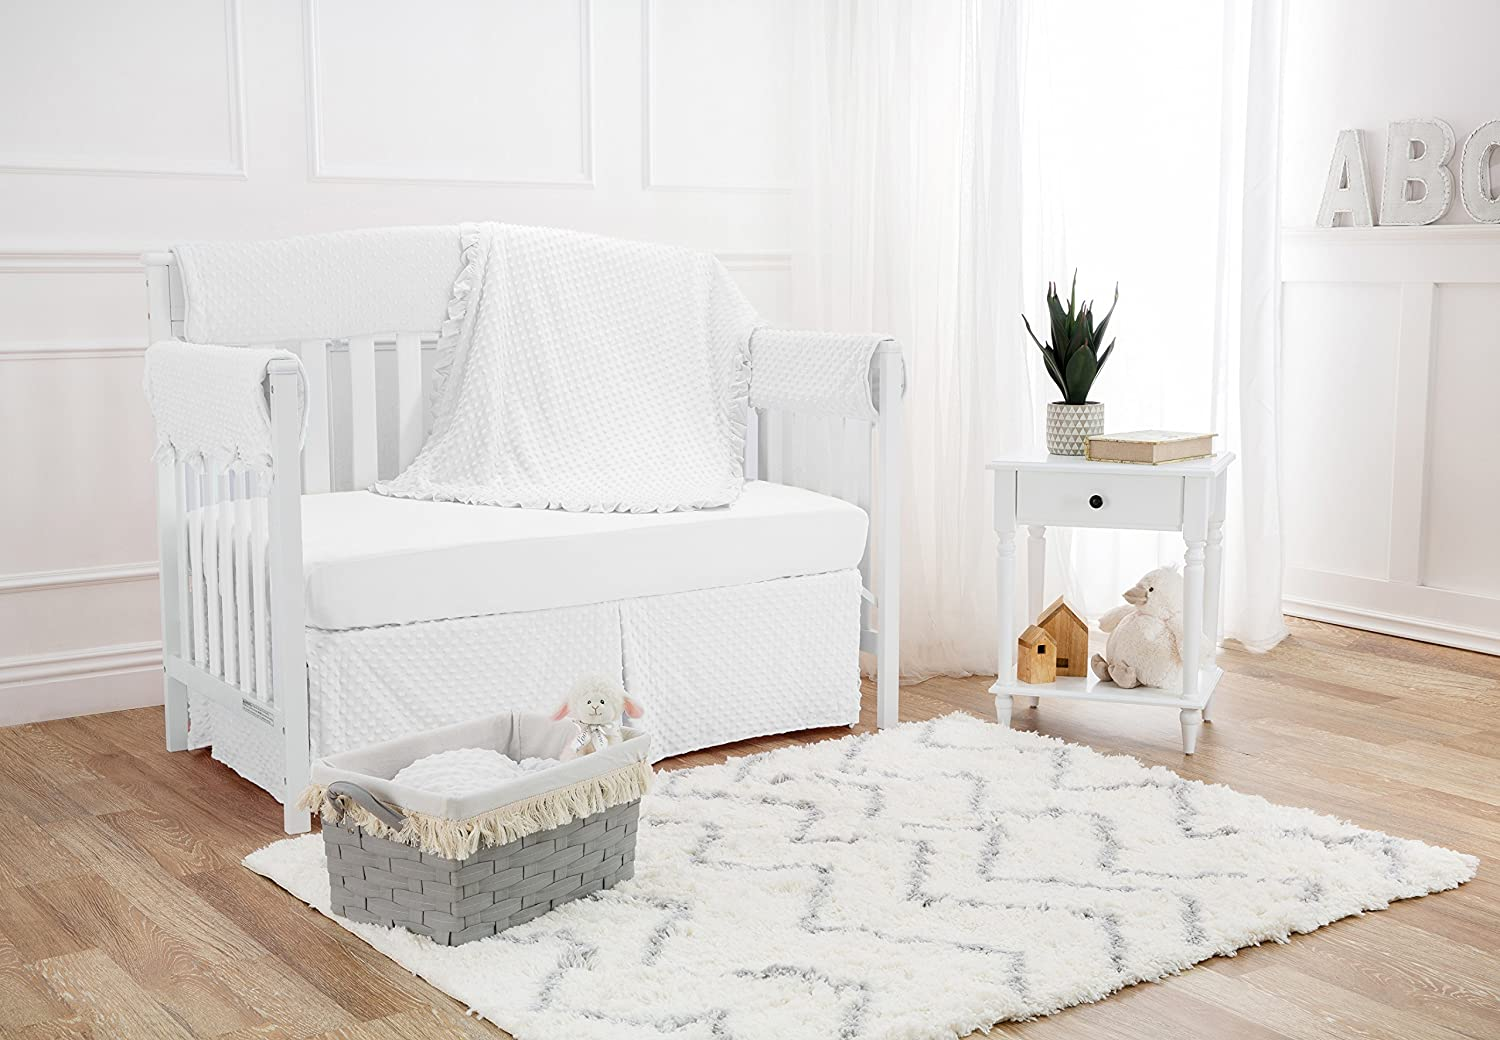 White American Baby Company Heavenly Soft 6 Piece Crib Bedding Set